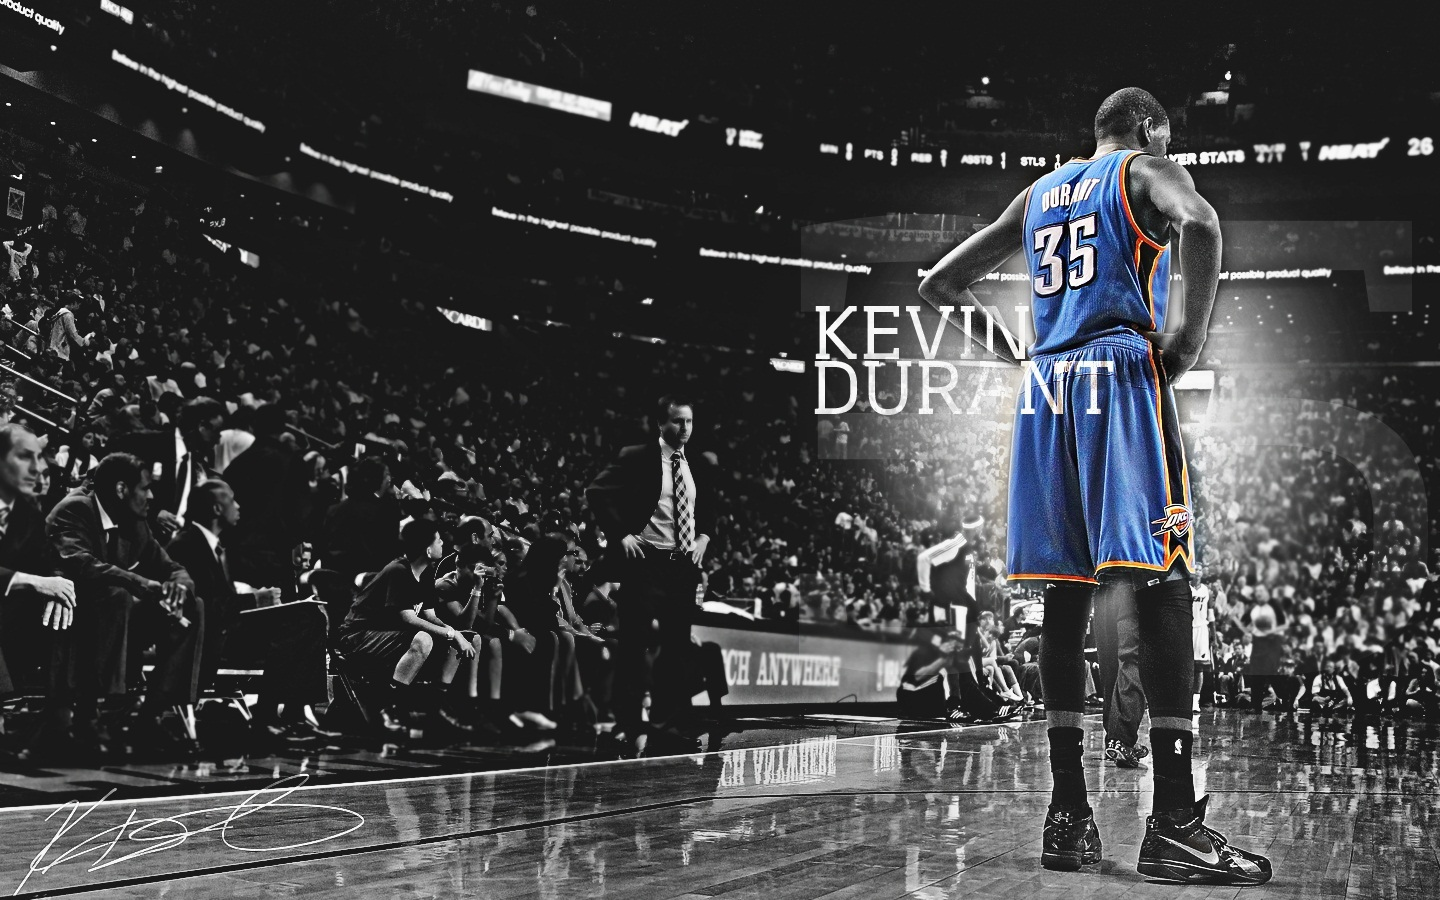 Kevin Durant Quotes Wallpaper QuotesGram 1440x900